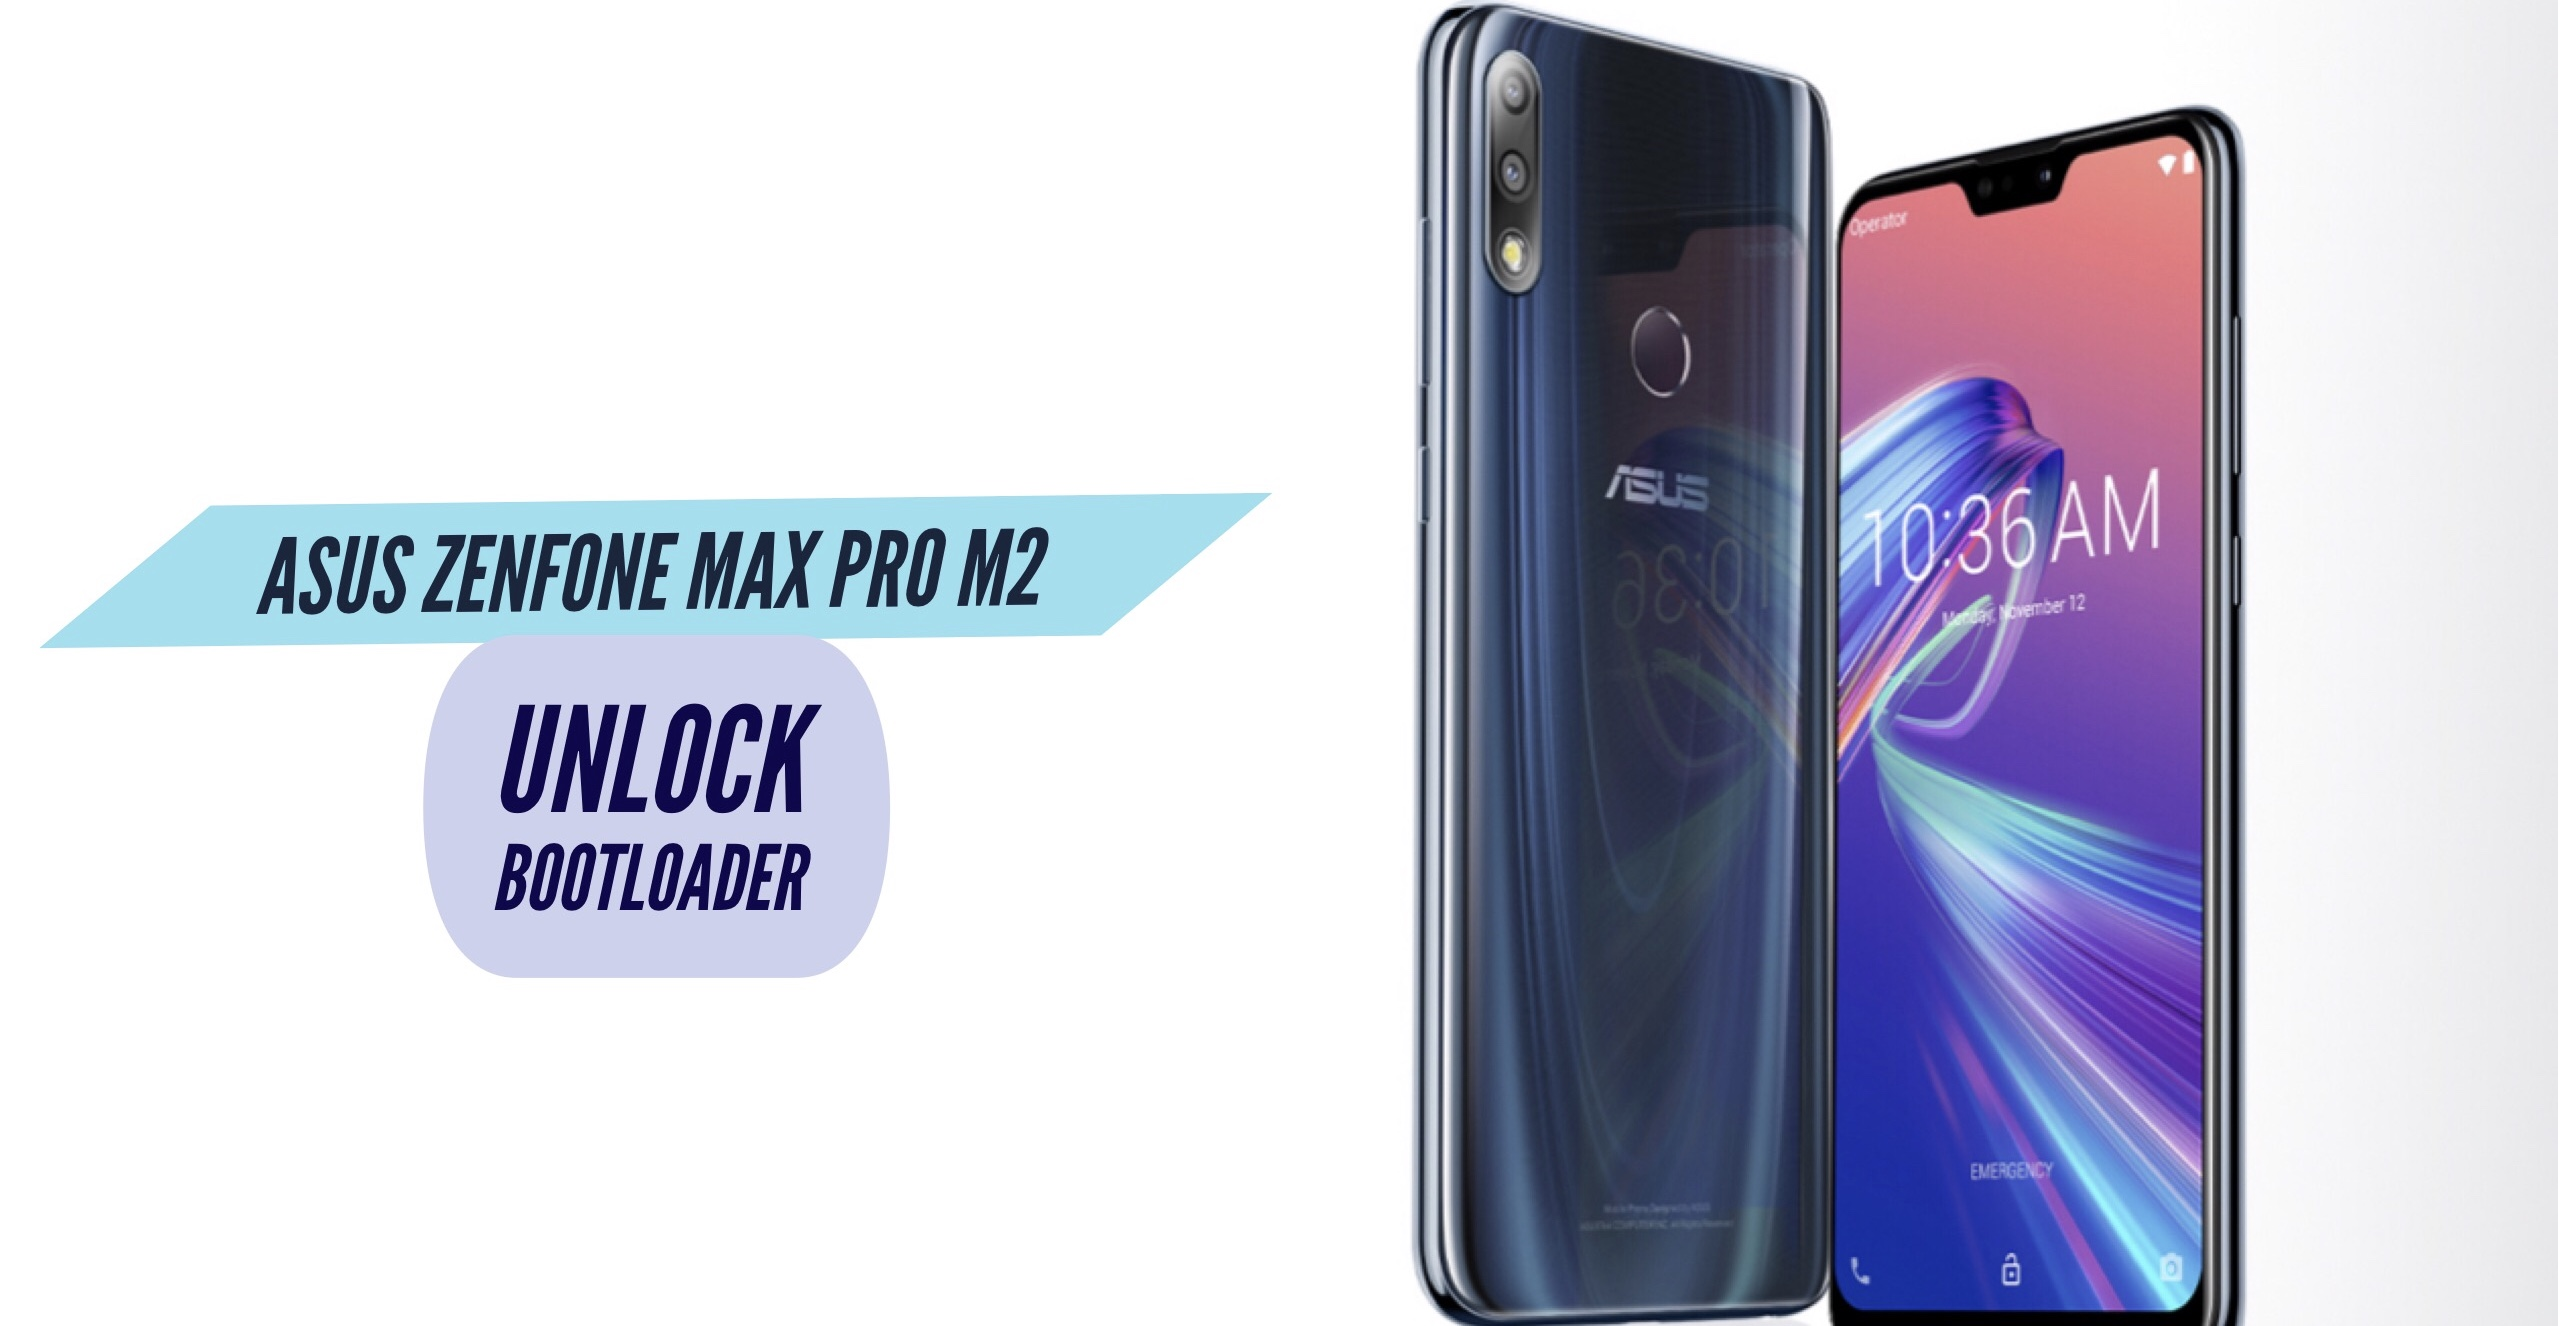 How to Unlock Bootloader on Asus Zenfone Max Pro M2?